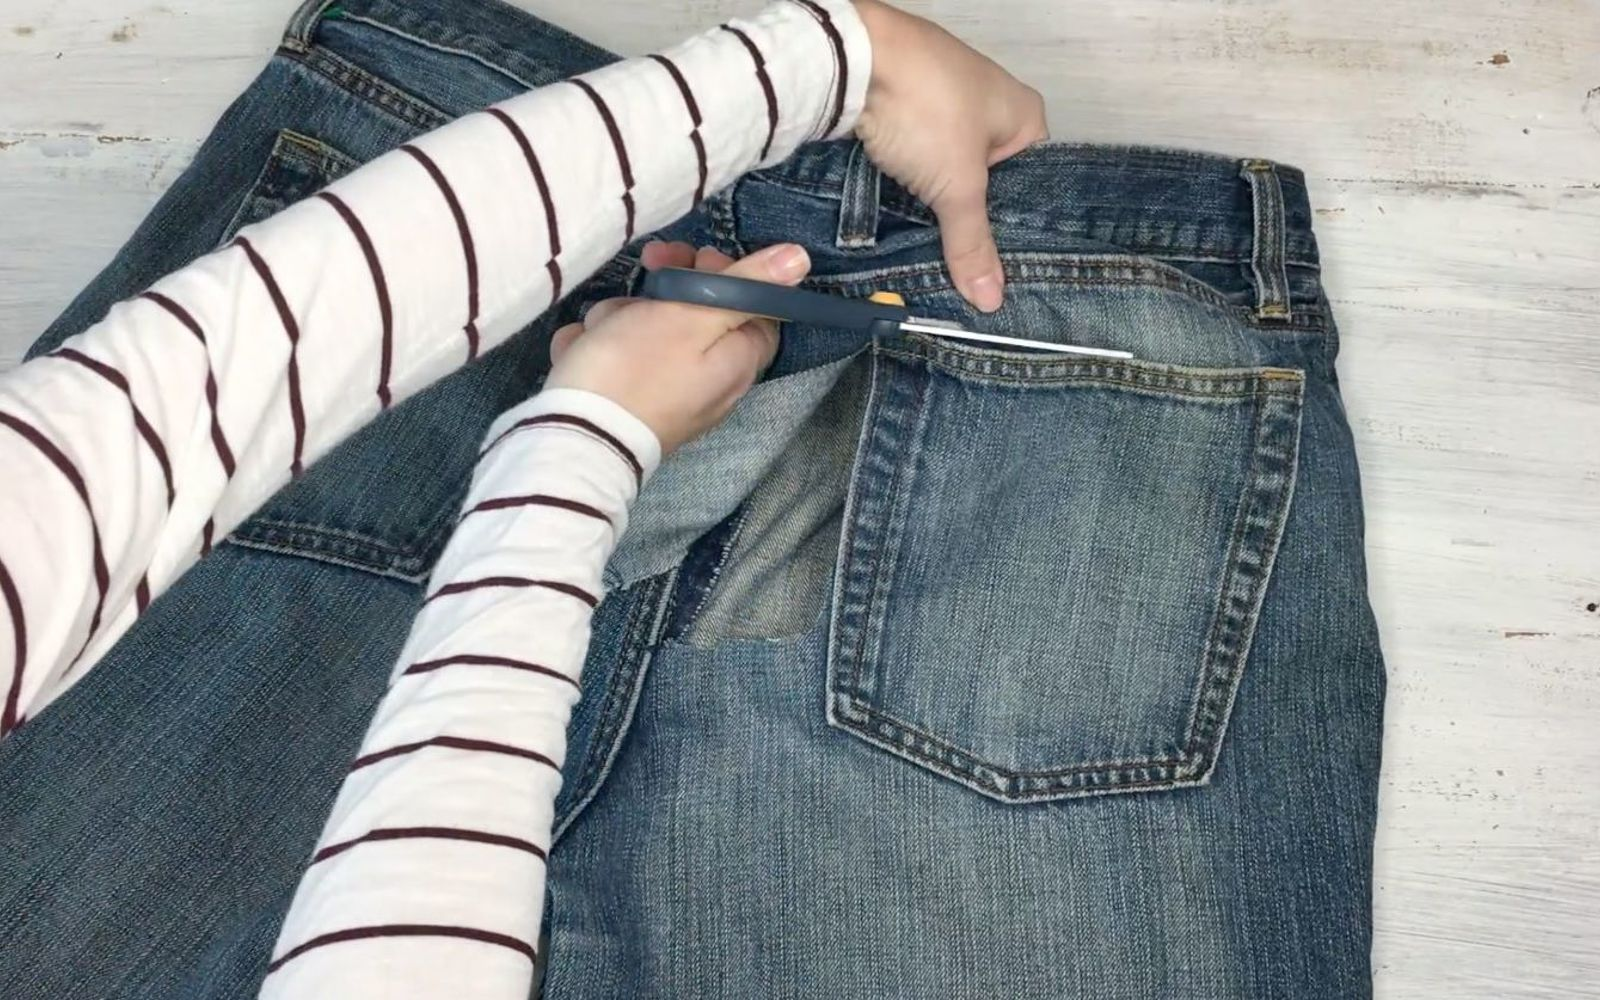 s upcycle your old clothing items for these great ideas, Step 2 Cut out pocket of jeans